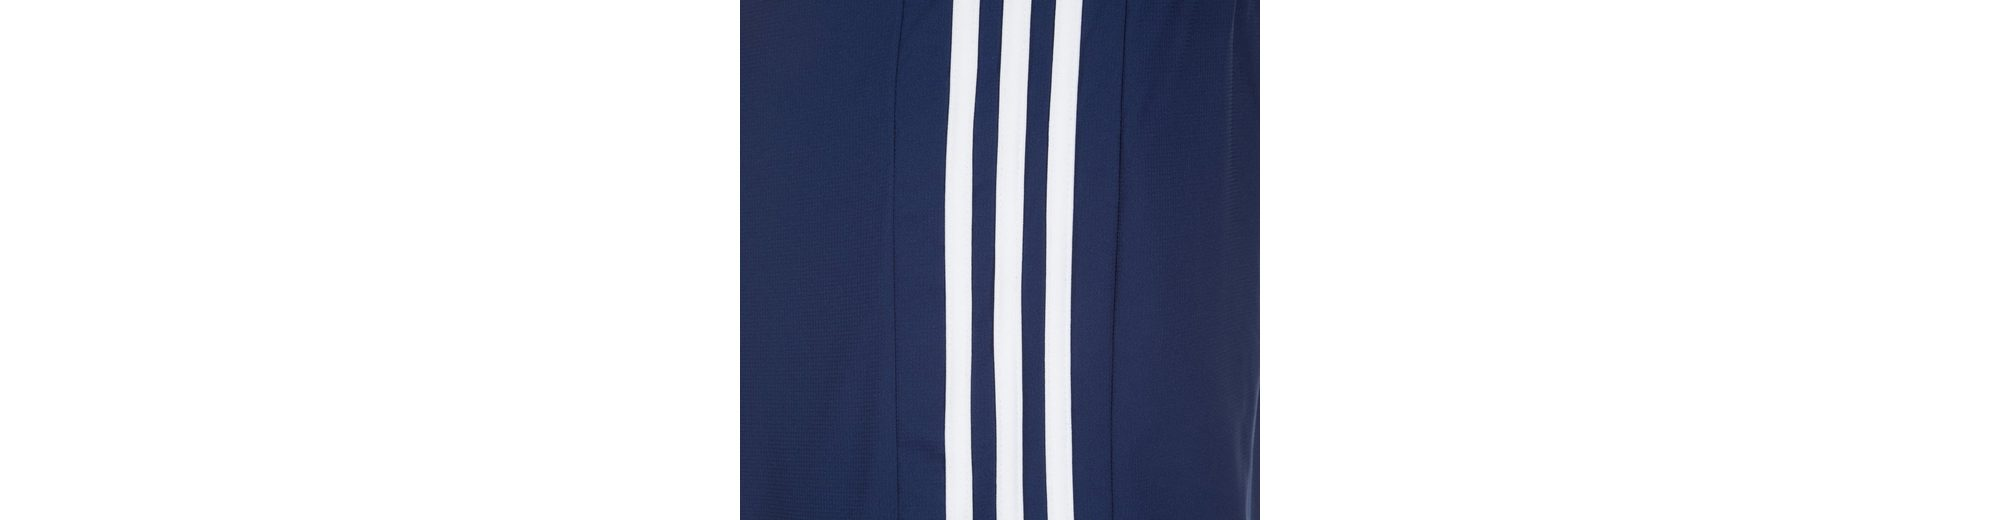 adidas Performance Condivo 16 Short Herren Billig Verkauf Sneakernews tsNCD